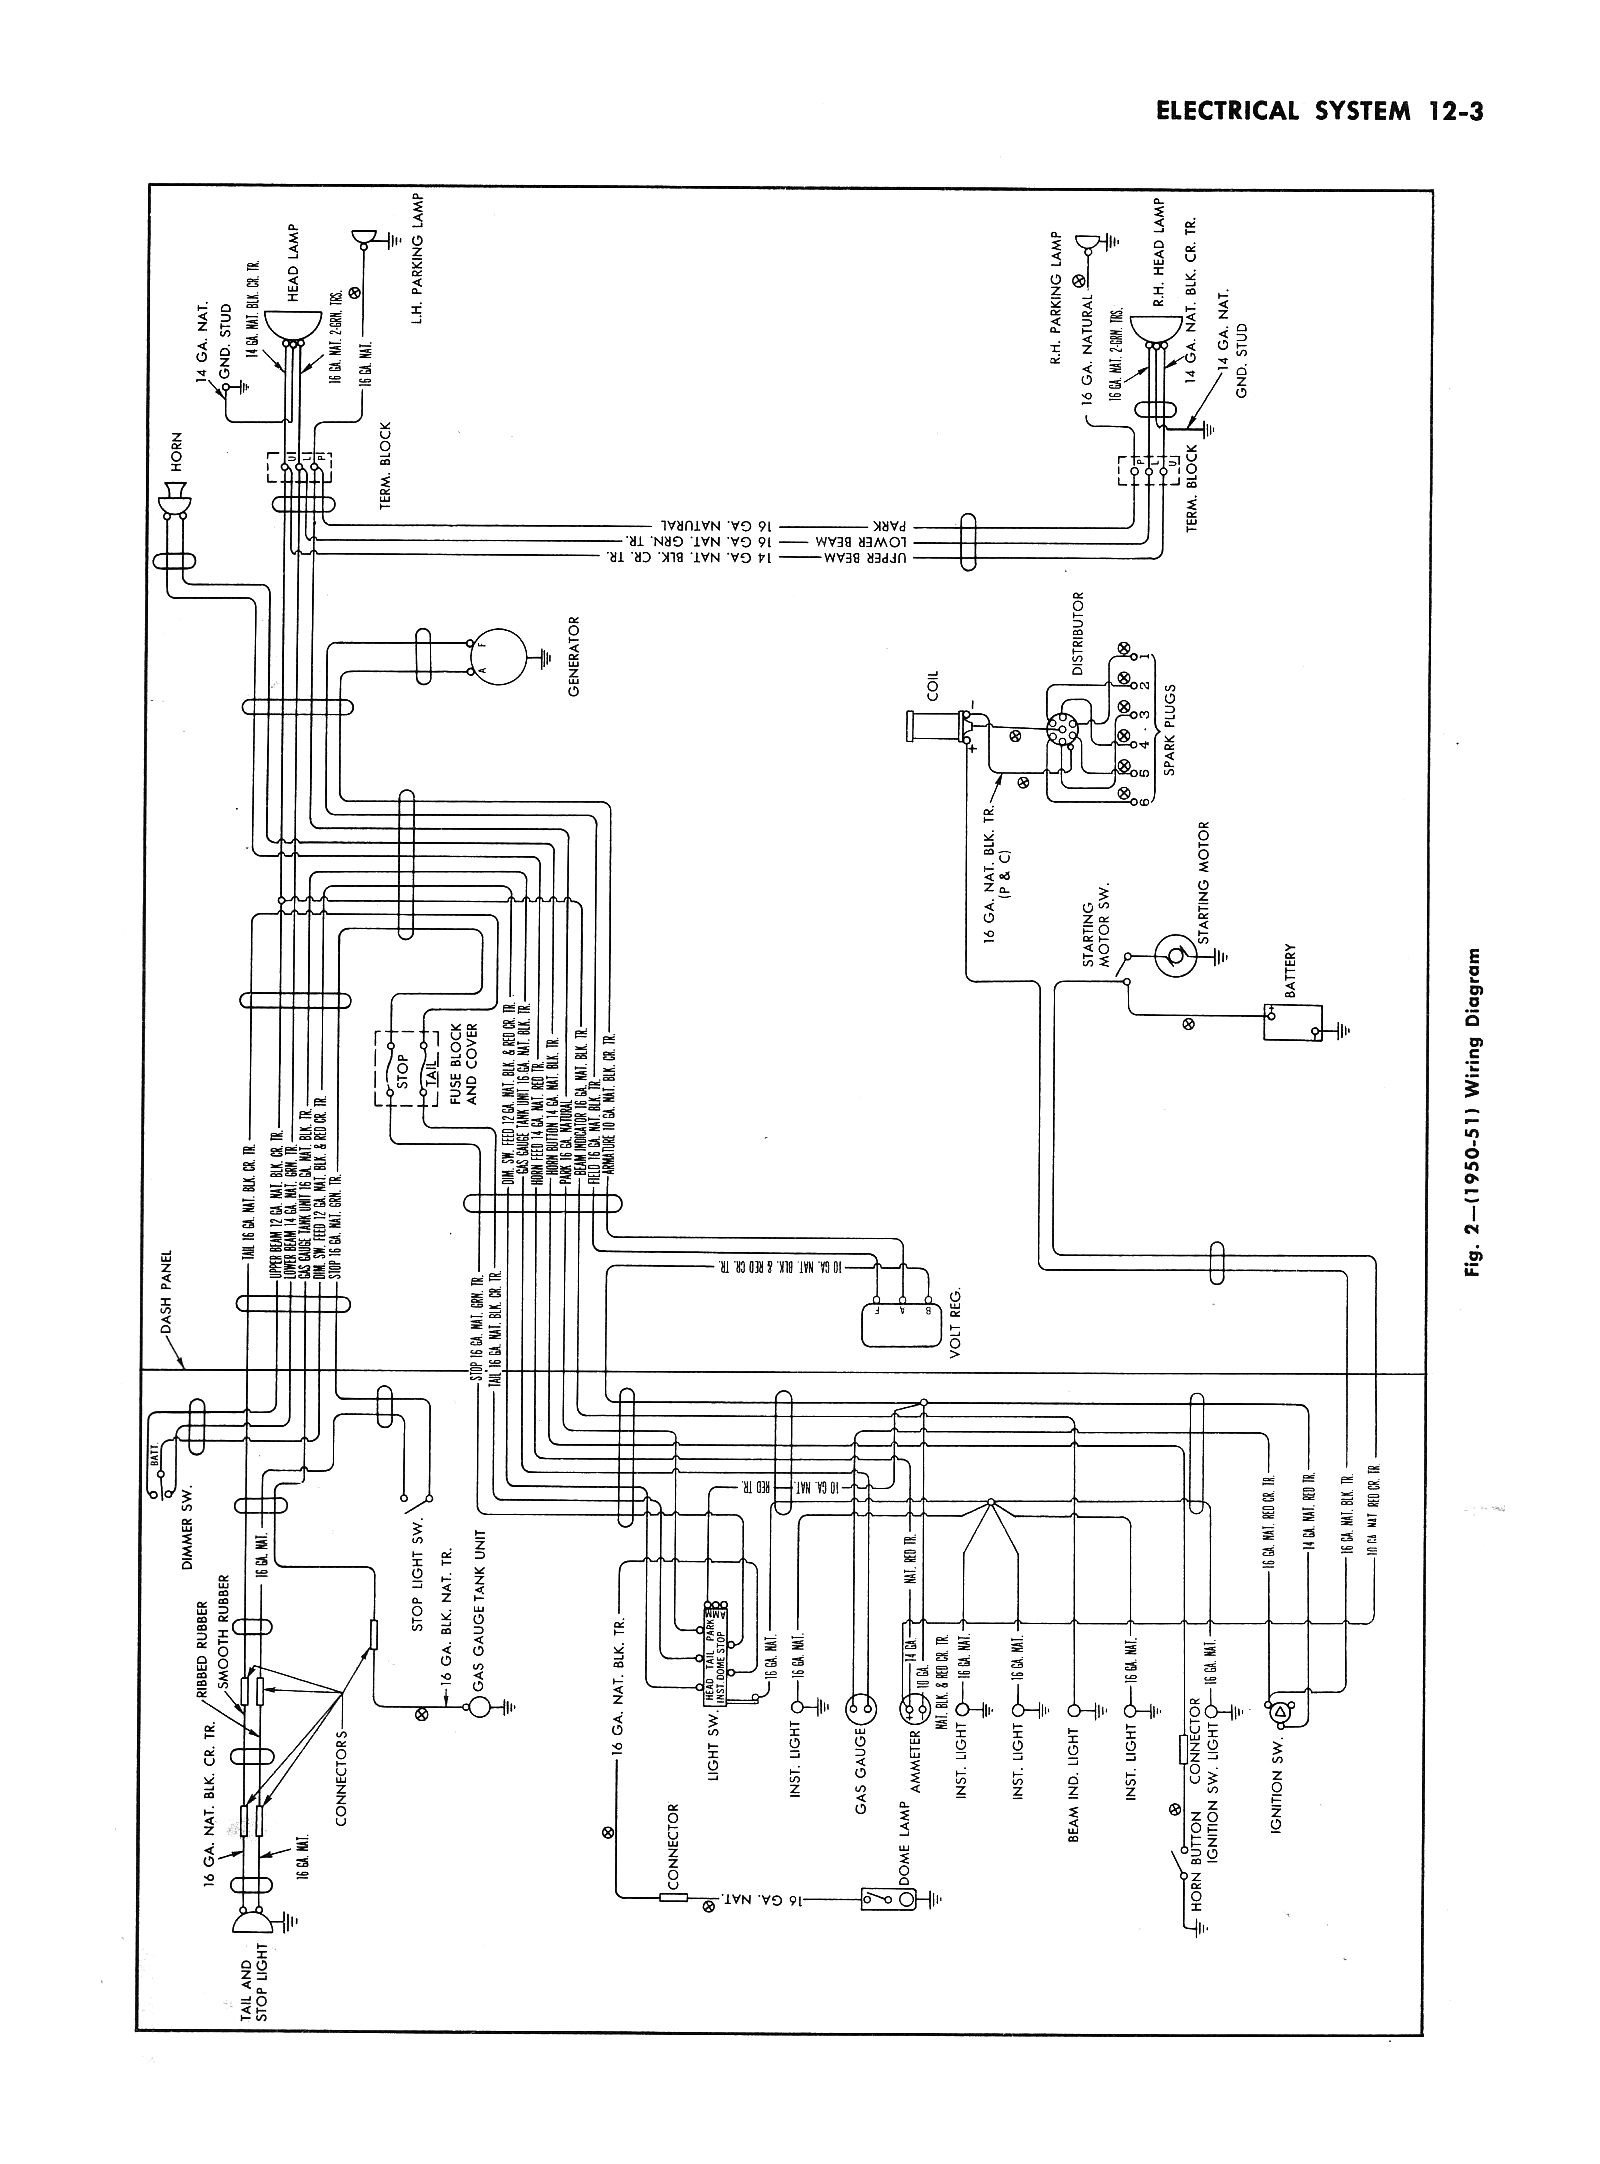 1950 chevy fleetline wiring diagram get free image about wiring rh syiah co